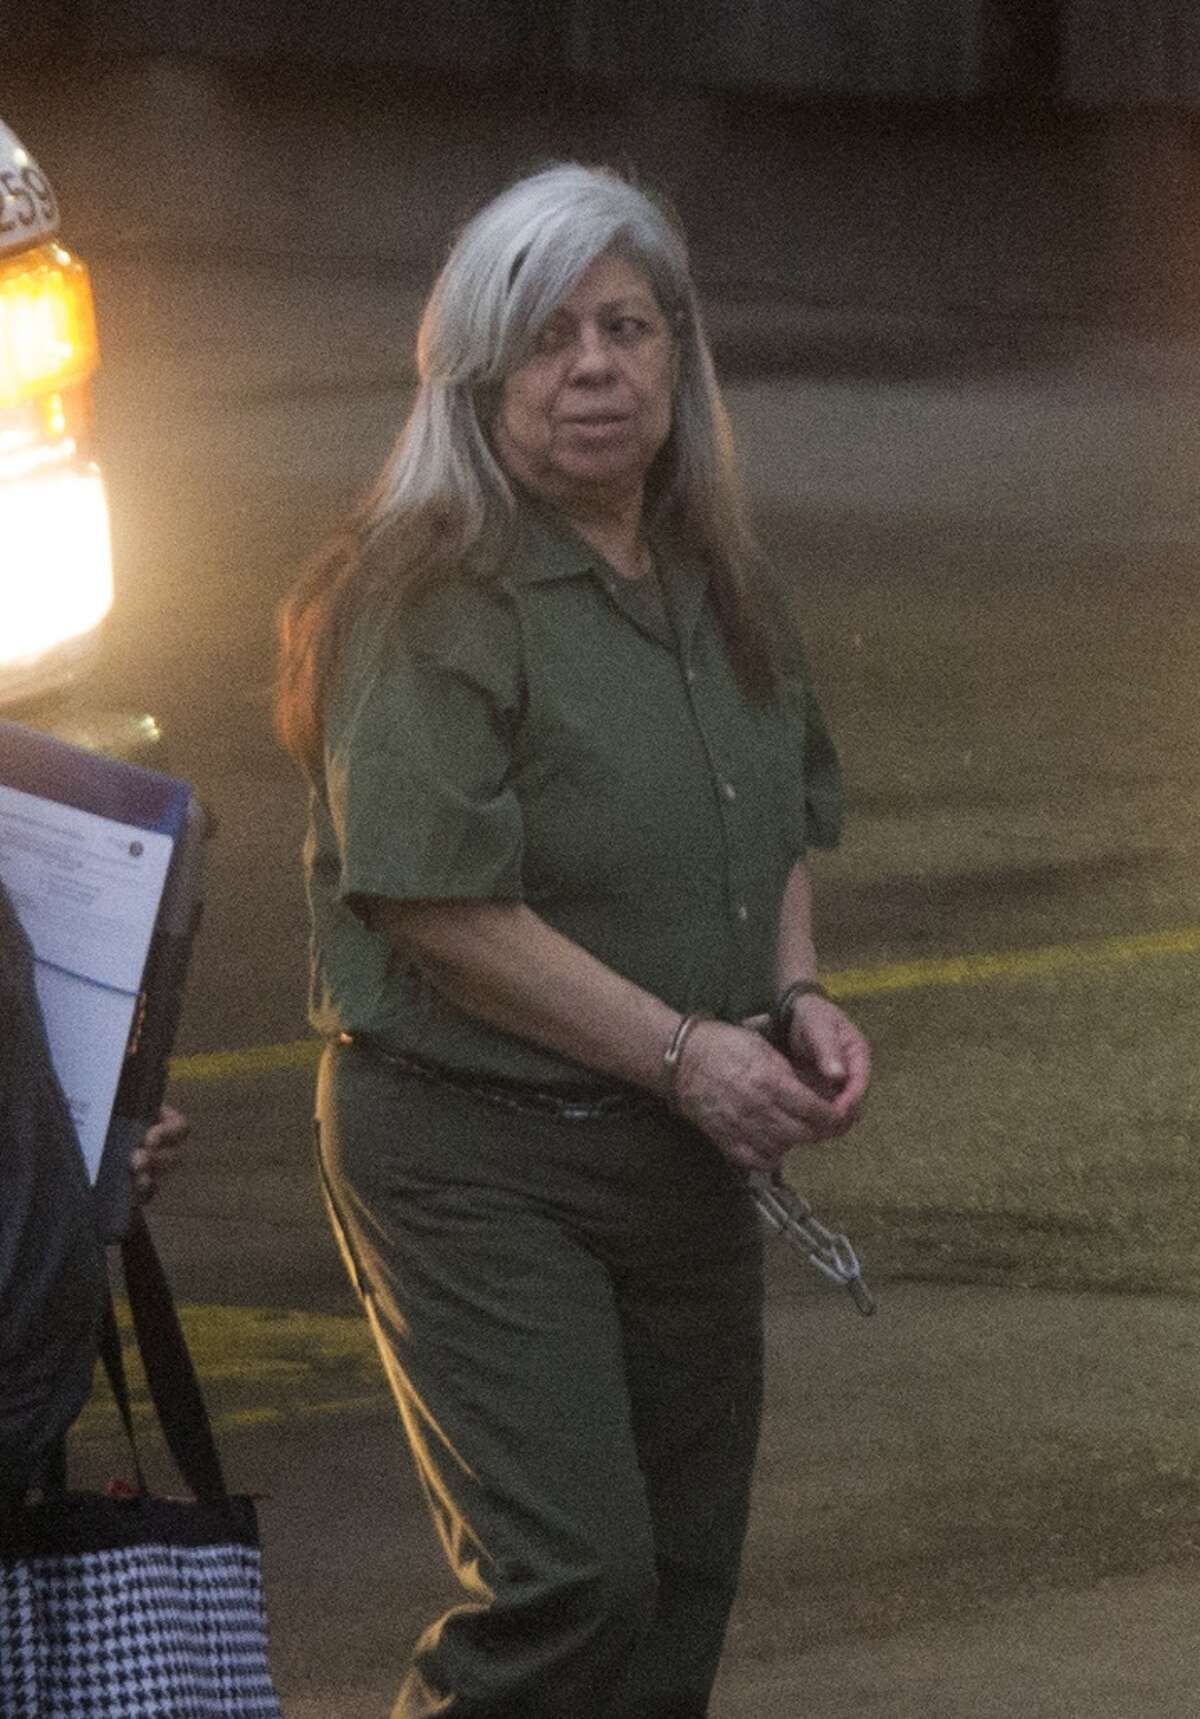 Hortencia Medeles enters the Federal Courthouse, Monday, April 13, 2015, in Houston. She was convicted of running a sex trafficking operation and faces up to life in prison. A woman has gone to federal court to demand that Medeles be ordered to pay her restitution for the months she worked for her as a prostitute, while 16 years old. (Cody Duty / Houston Chronicle)